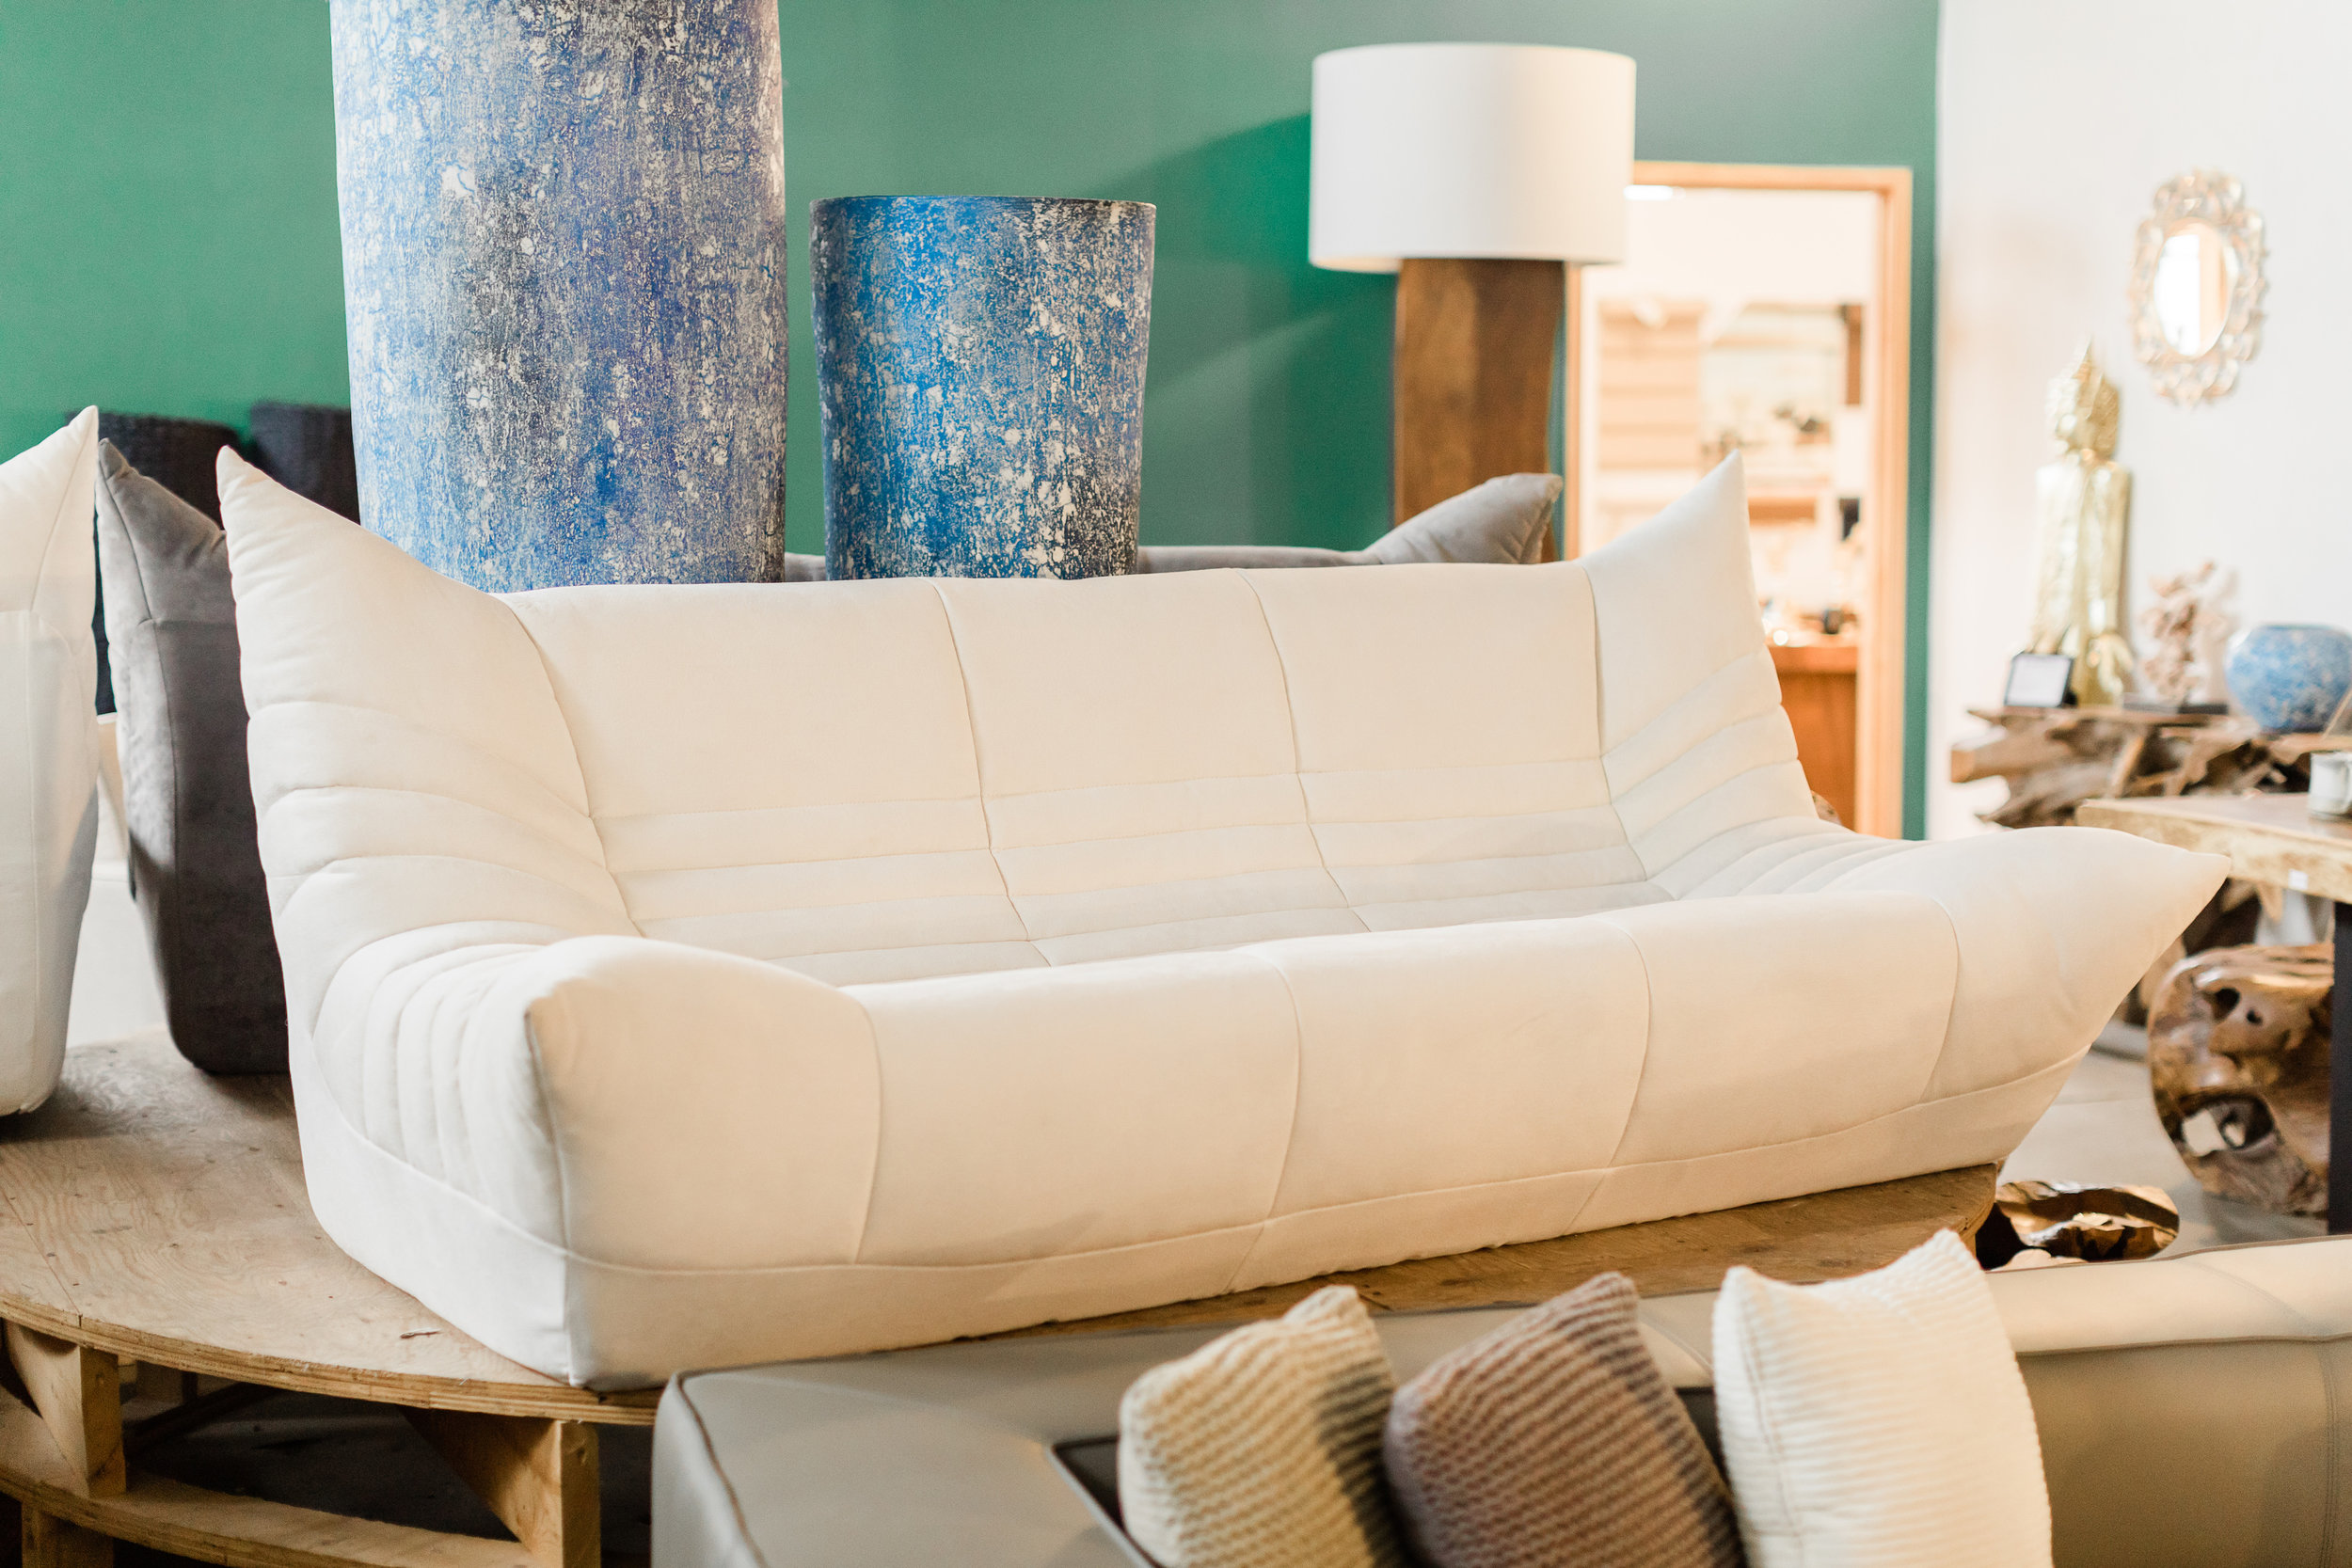 Copy of Wolseley Sofa in White fabric. Blue Moon Furniture